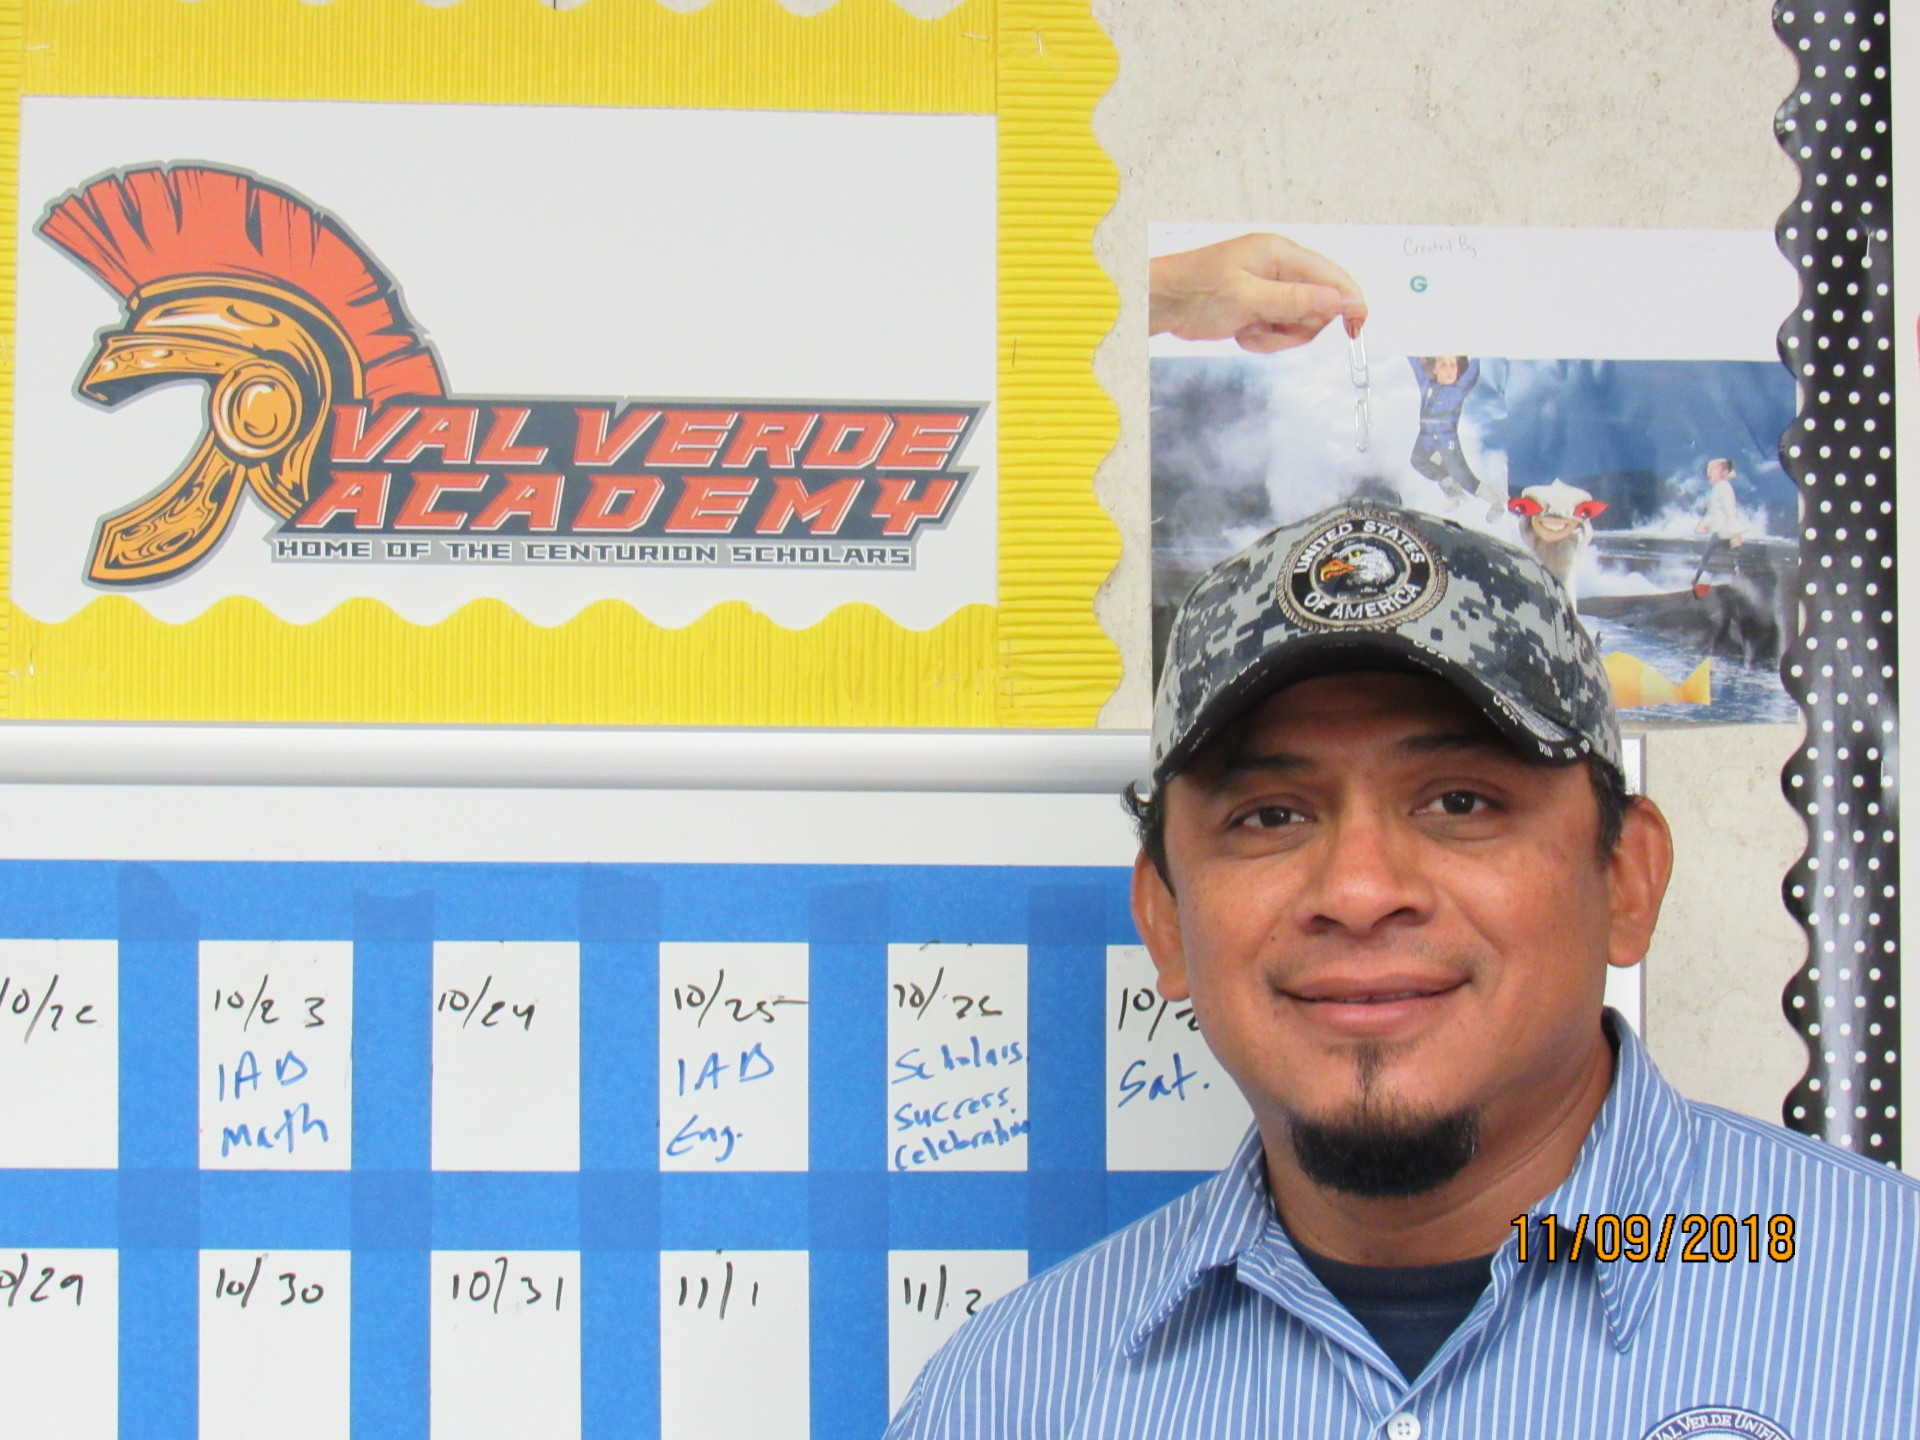 I will work to create an atmosphere at VVA that is clean and inviting for our students, staff, and all of our campus visitors. ~ Carlos Morales